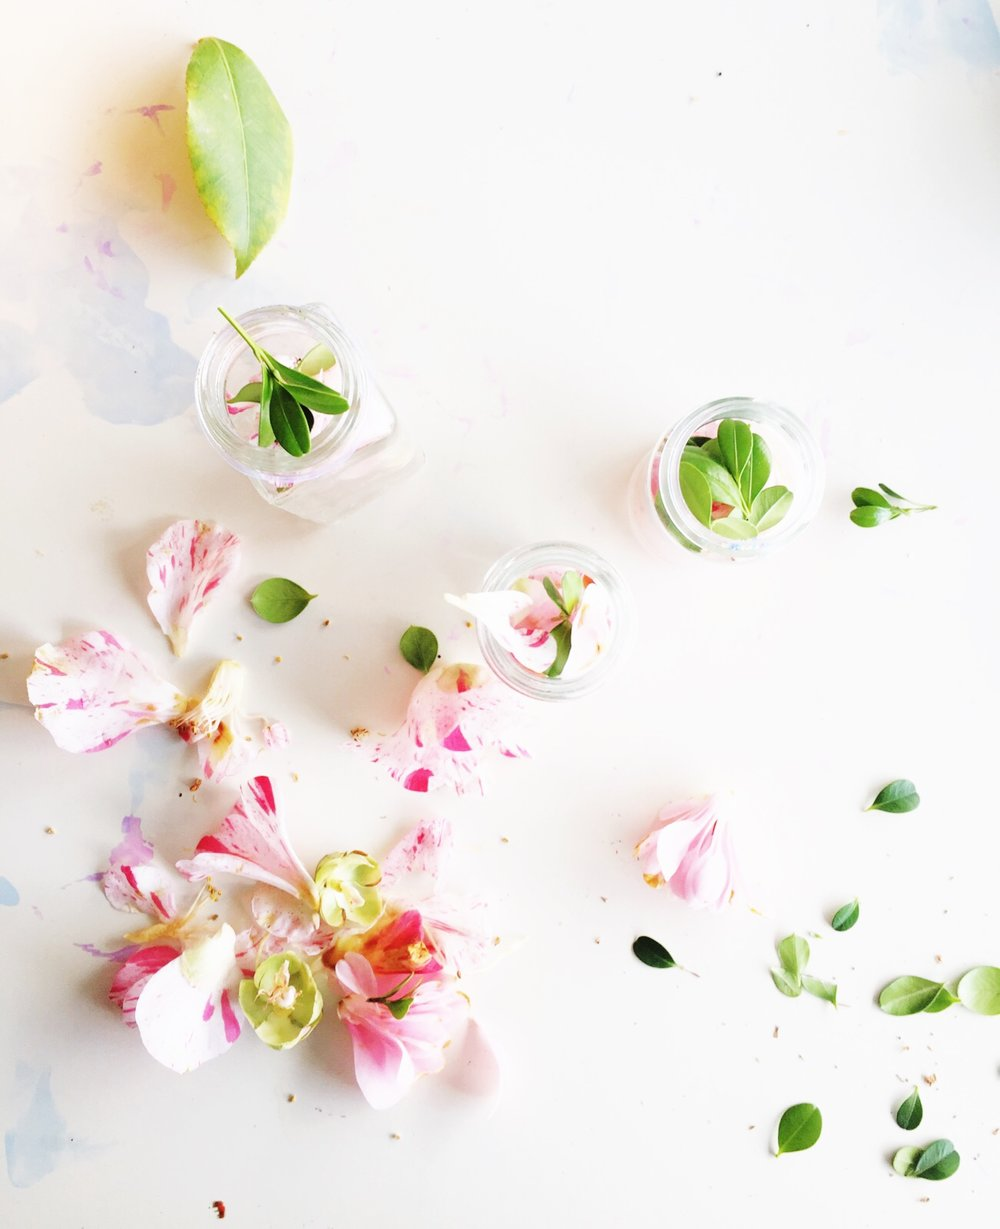 diy perfume with spring flowers